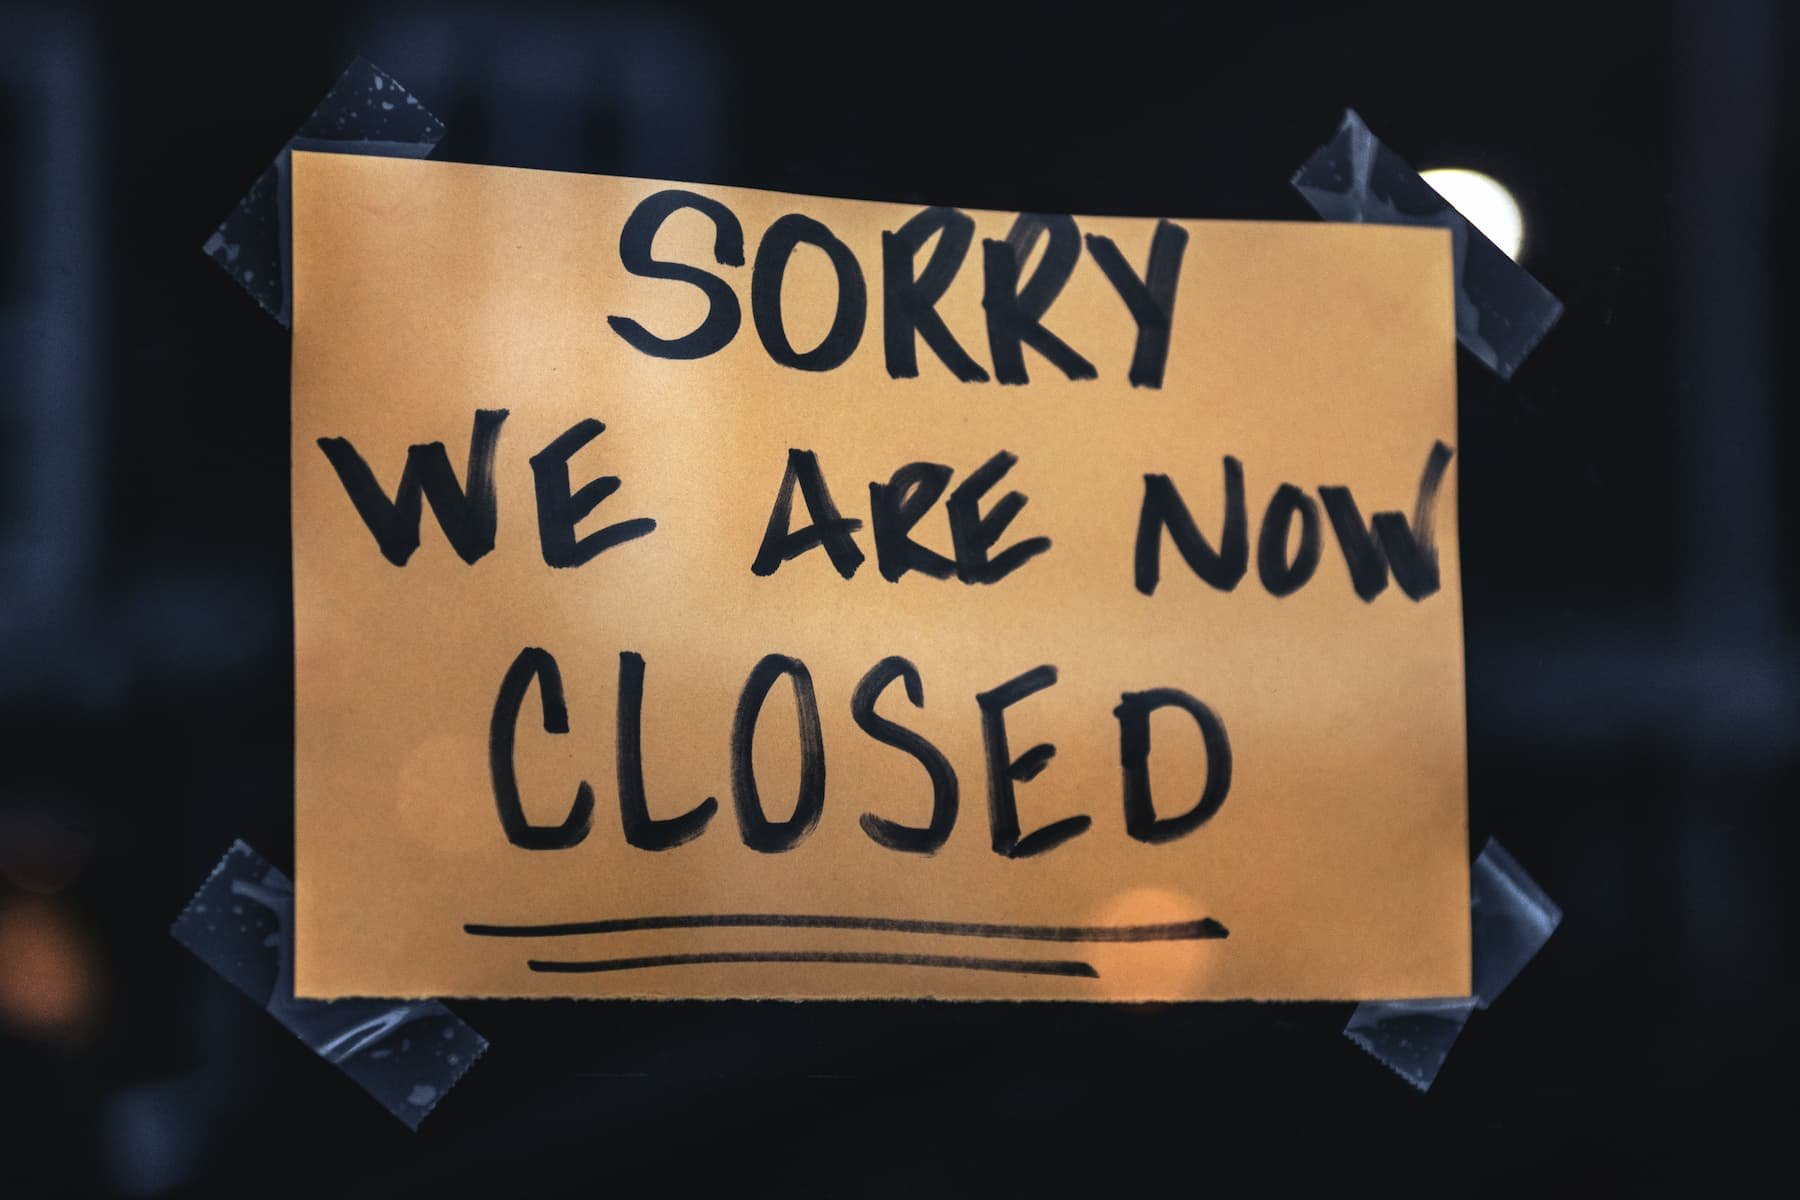 """""""Sorry we are closed business"""" sign"""